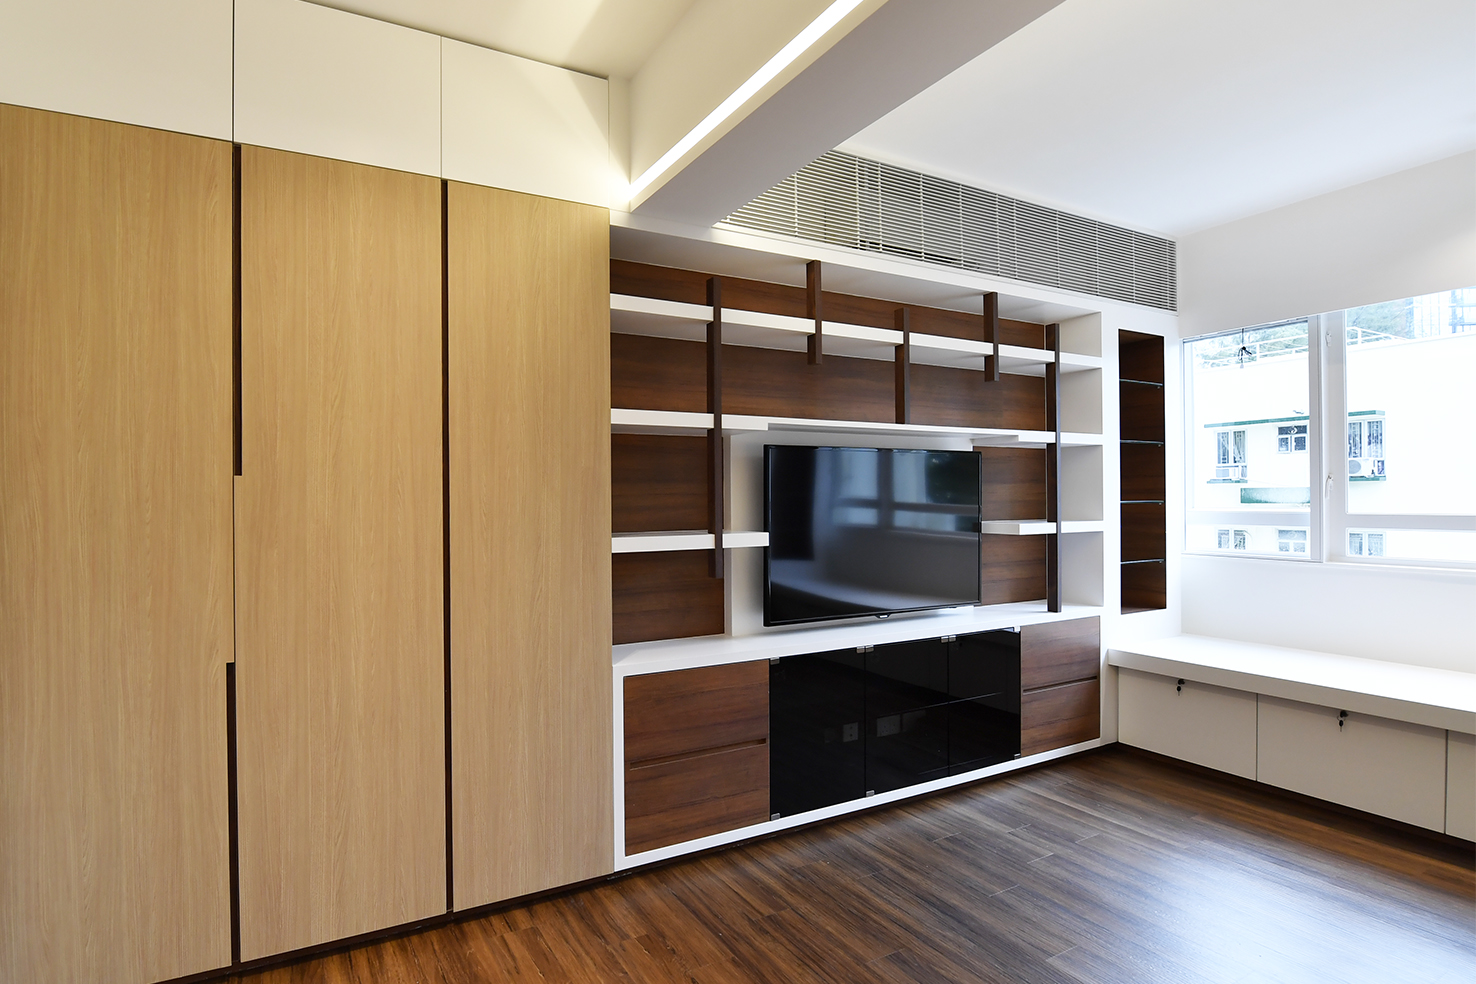 家居設計 Home Design hk 山景觀 Mountain Scape Apartment  (4)